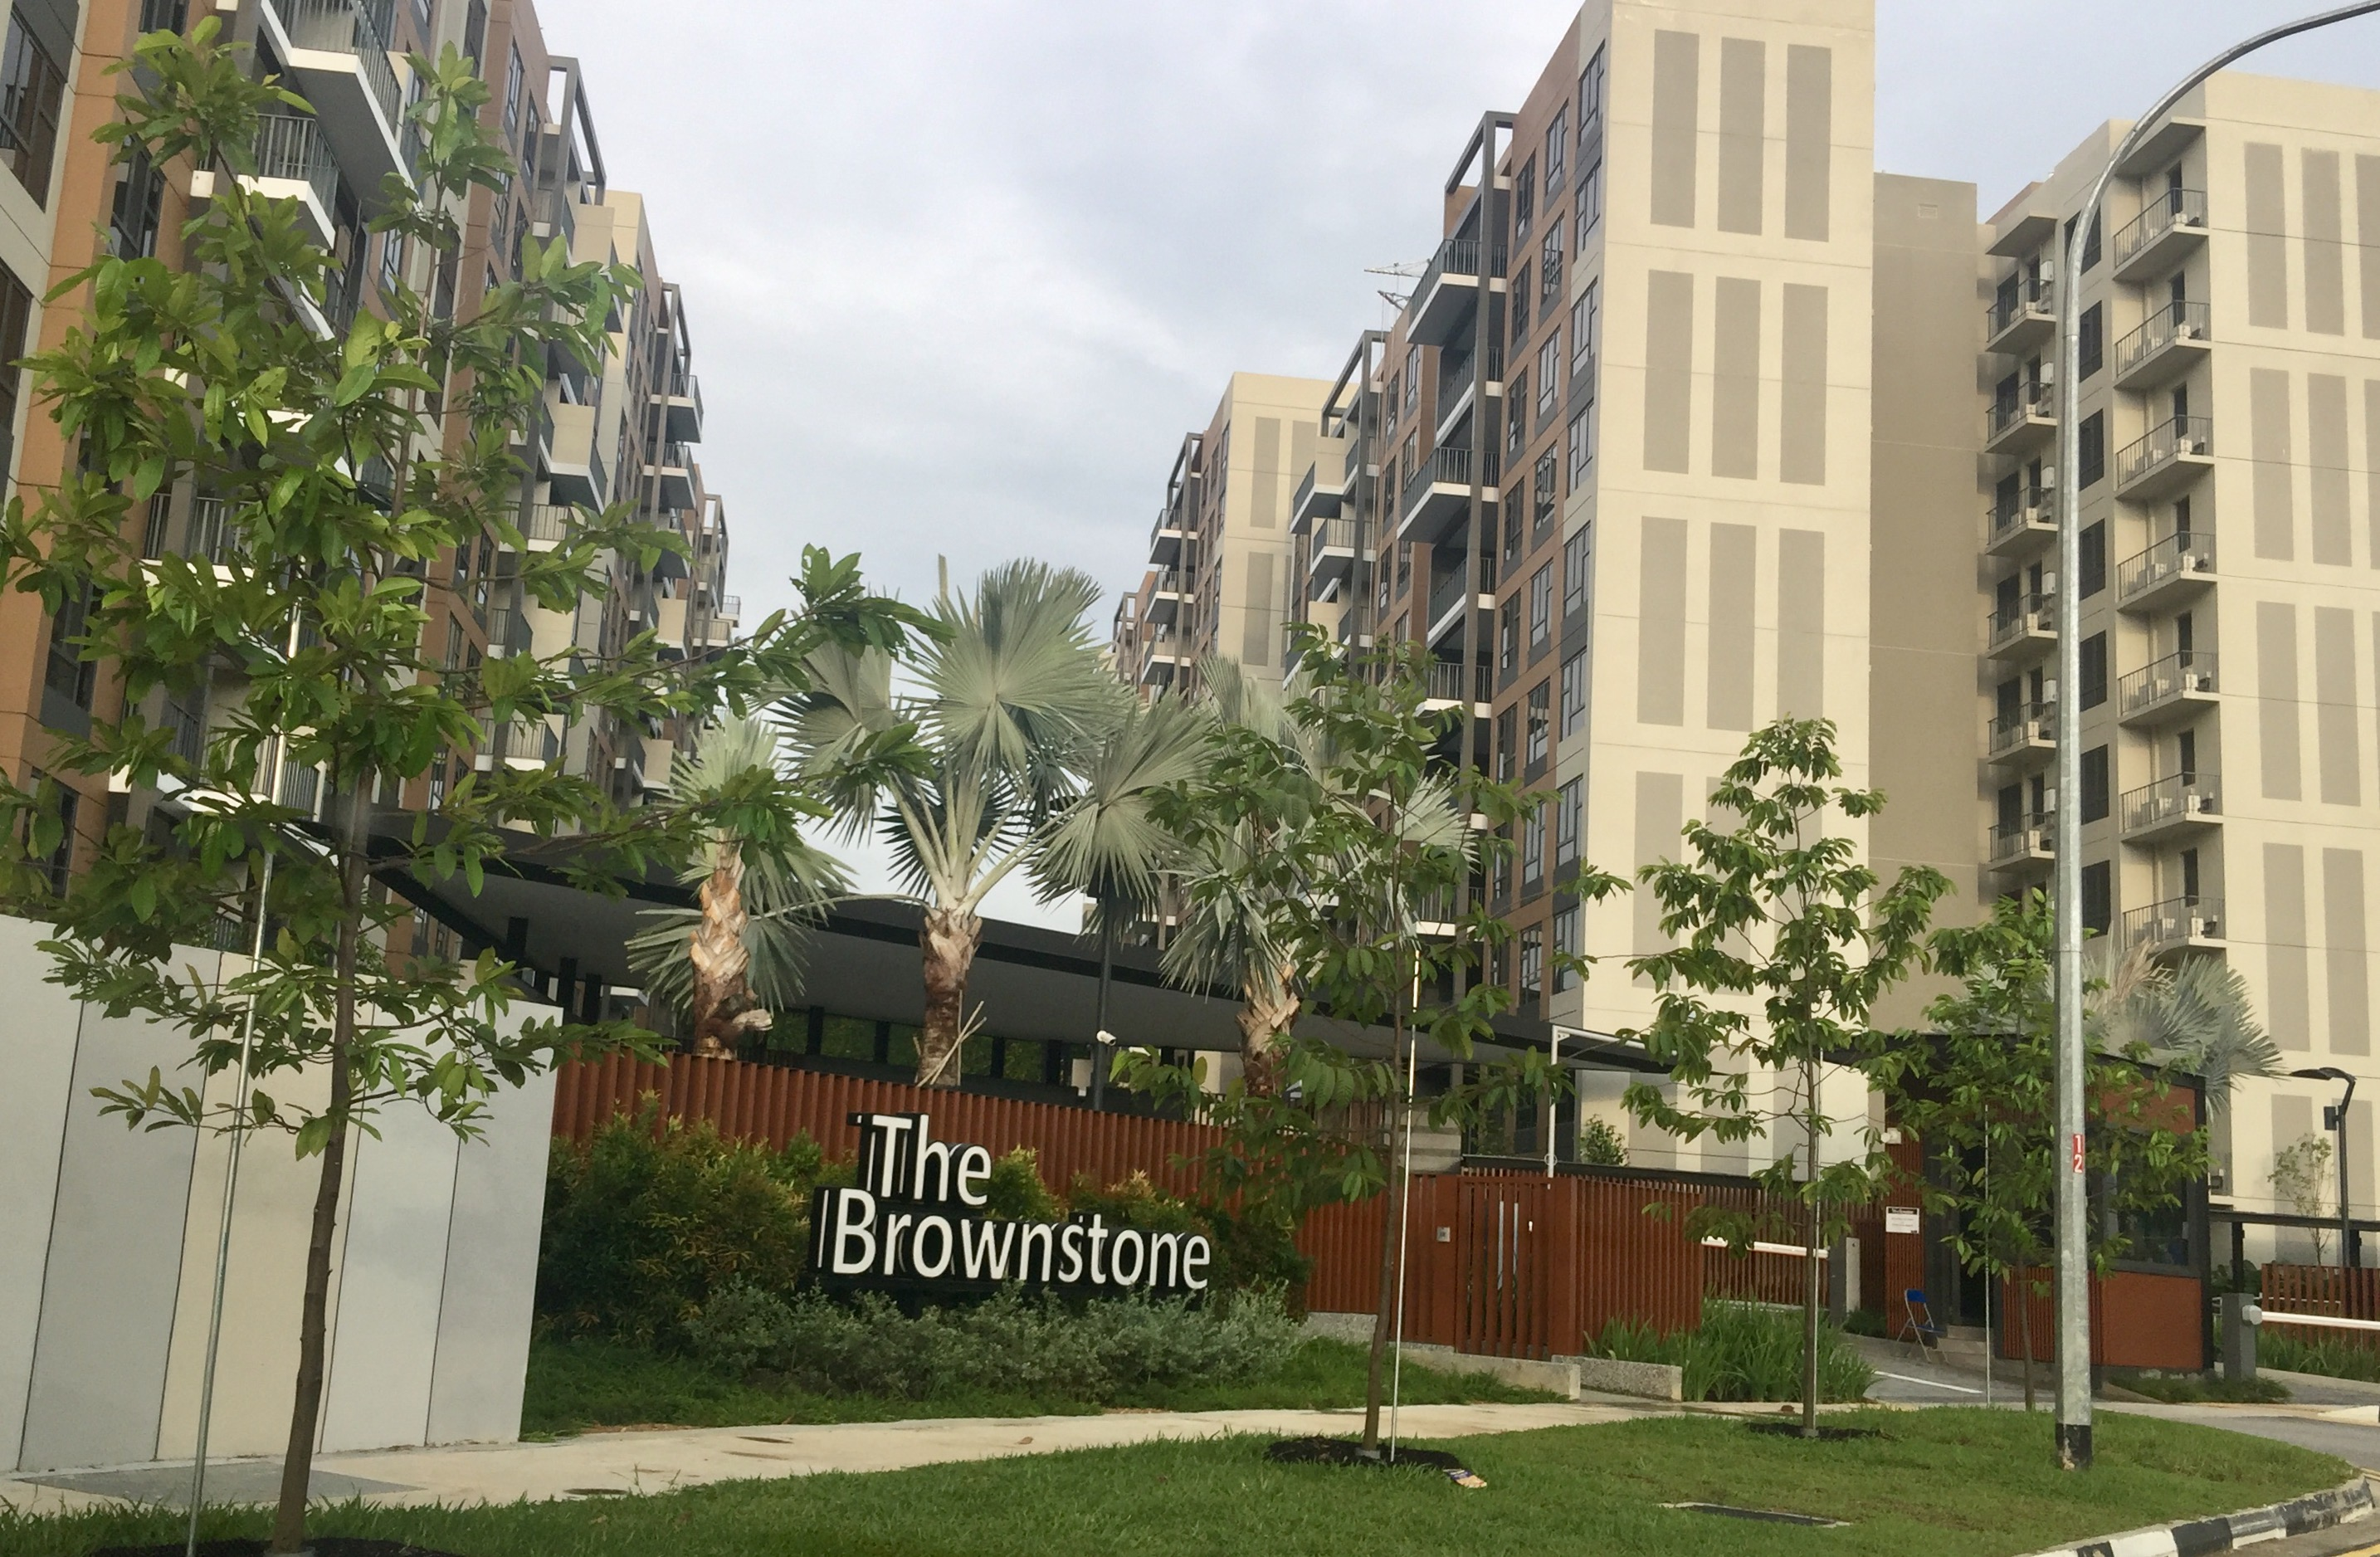 Brownstone EC (executive condominium) in Semabwang, Brownstone EC T.O.P. 2018, Brownstone EC near MRT station